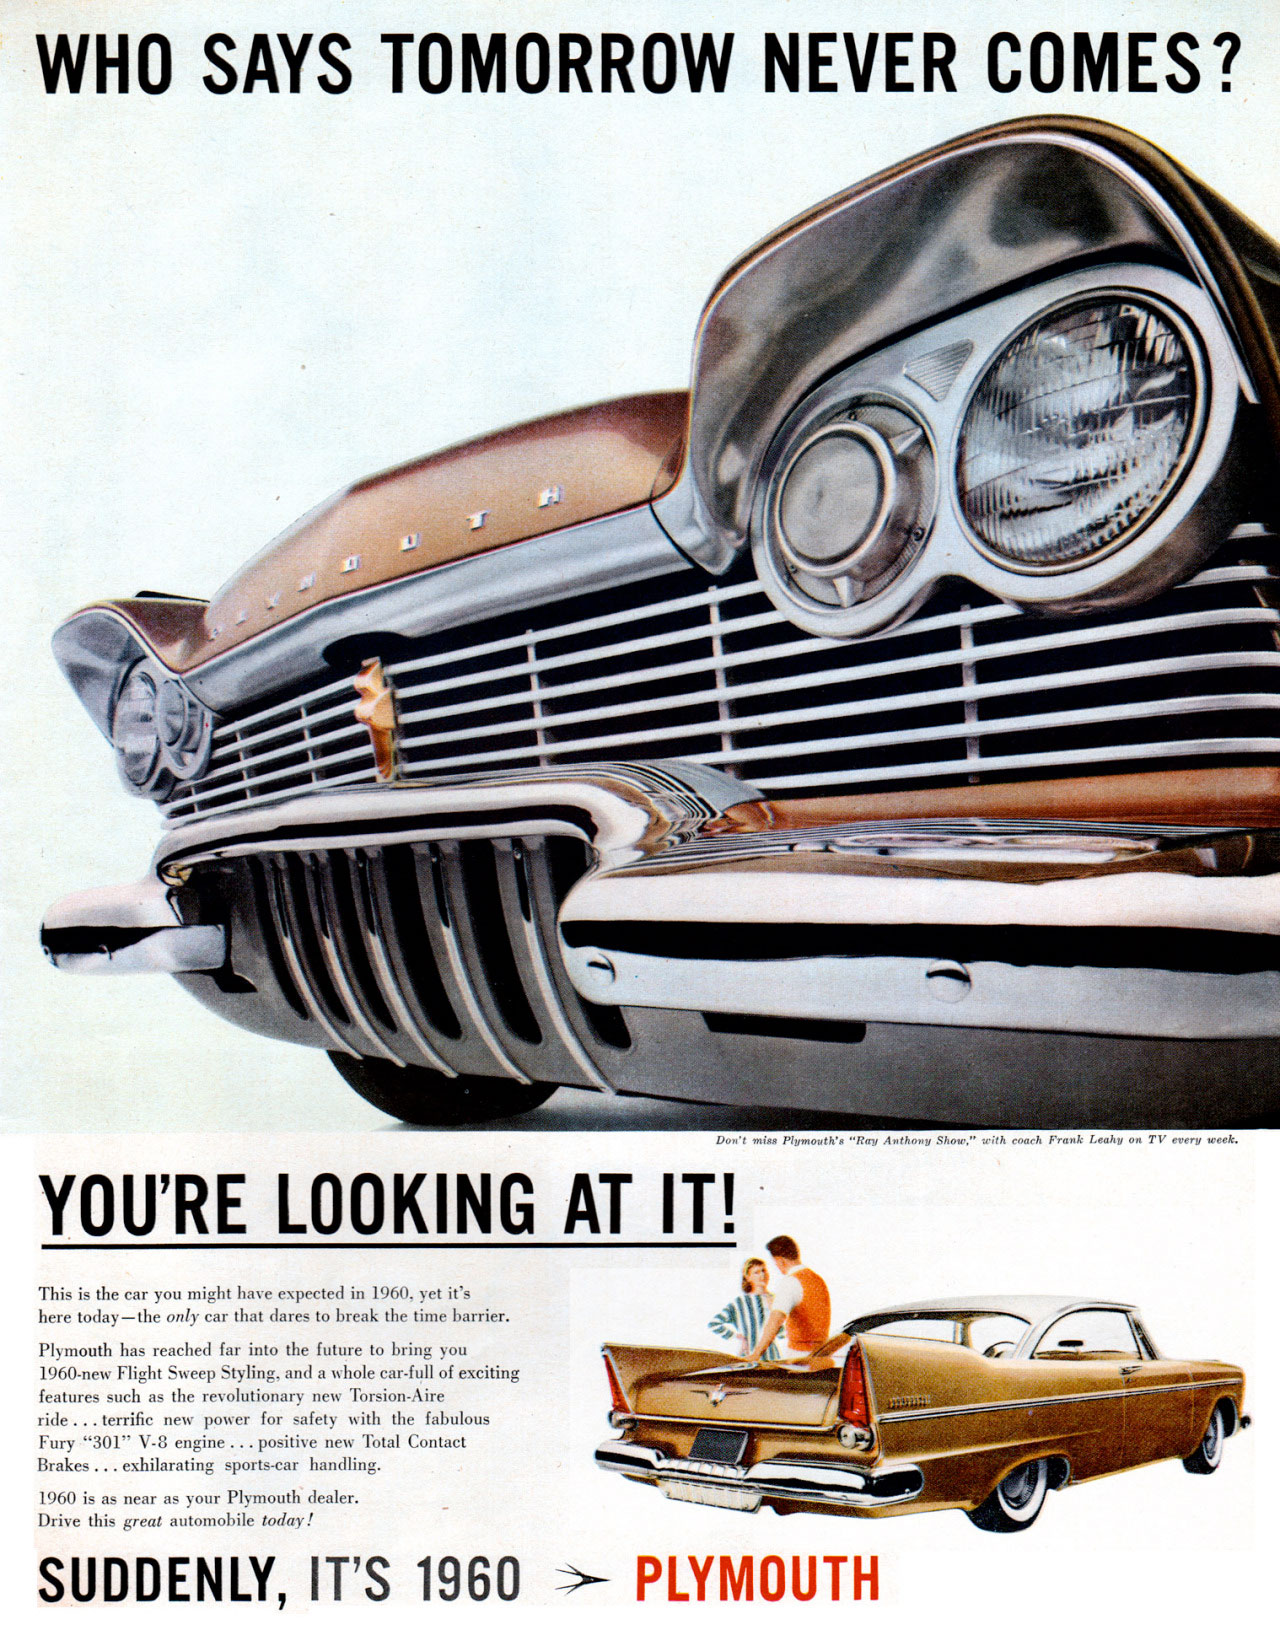 WHO SAYS TOMORROW NEVER COMES?   YOU'RE LOOKING AT   This is the car you might have expected in 1960, yet it's here today—the only car that dares to break the time barrier. Plymouth has reached far into the future to bring you 1960-new Flight Sweep Styling, and a whole car-full of exciting features such as the revolutionary new Torsion-Aire ride ... terrific new power for safety with the fabulous Fury ''301'' V-8 engine ... positive new Total Contact Brakes ... exhilarating sports-car handling. 1960 is as near as your Plymouth dealer Drive this great automobile today!   SUDDENLY, IT'S 1960 ›- PLYMOUTH